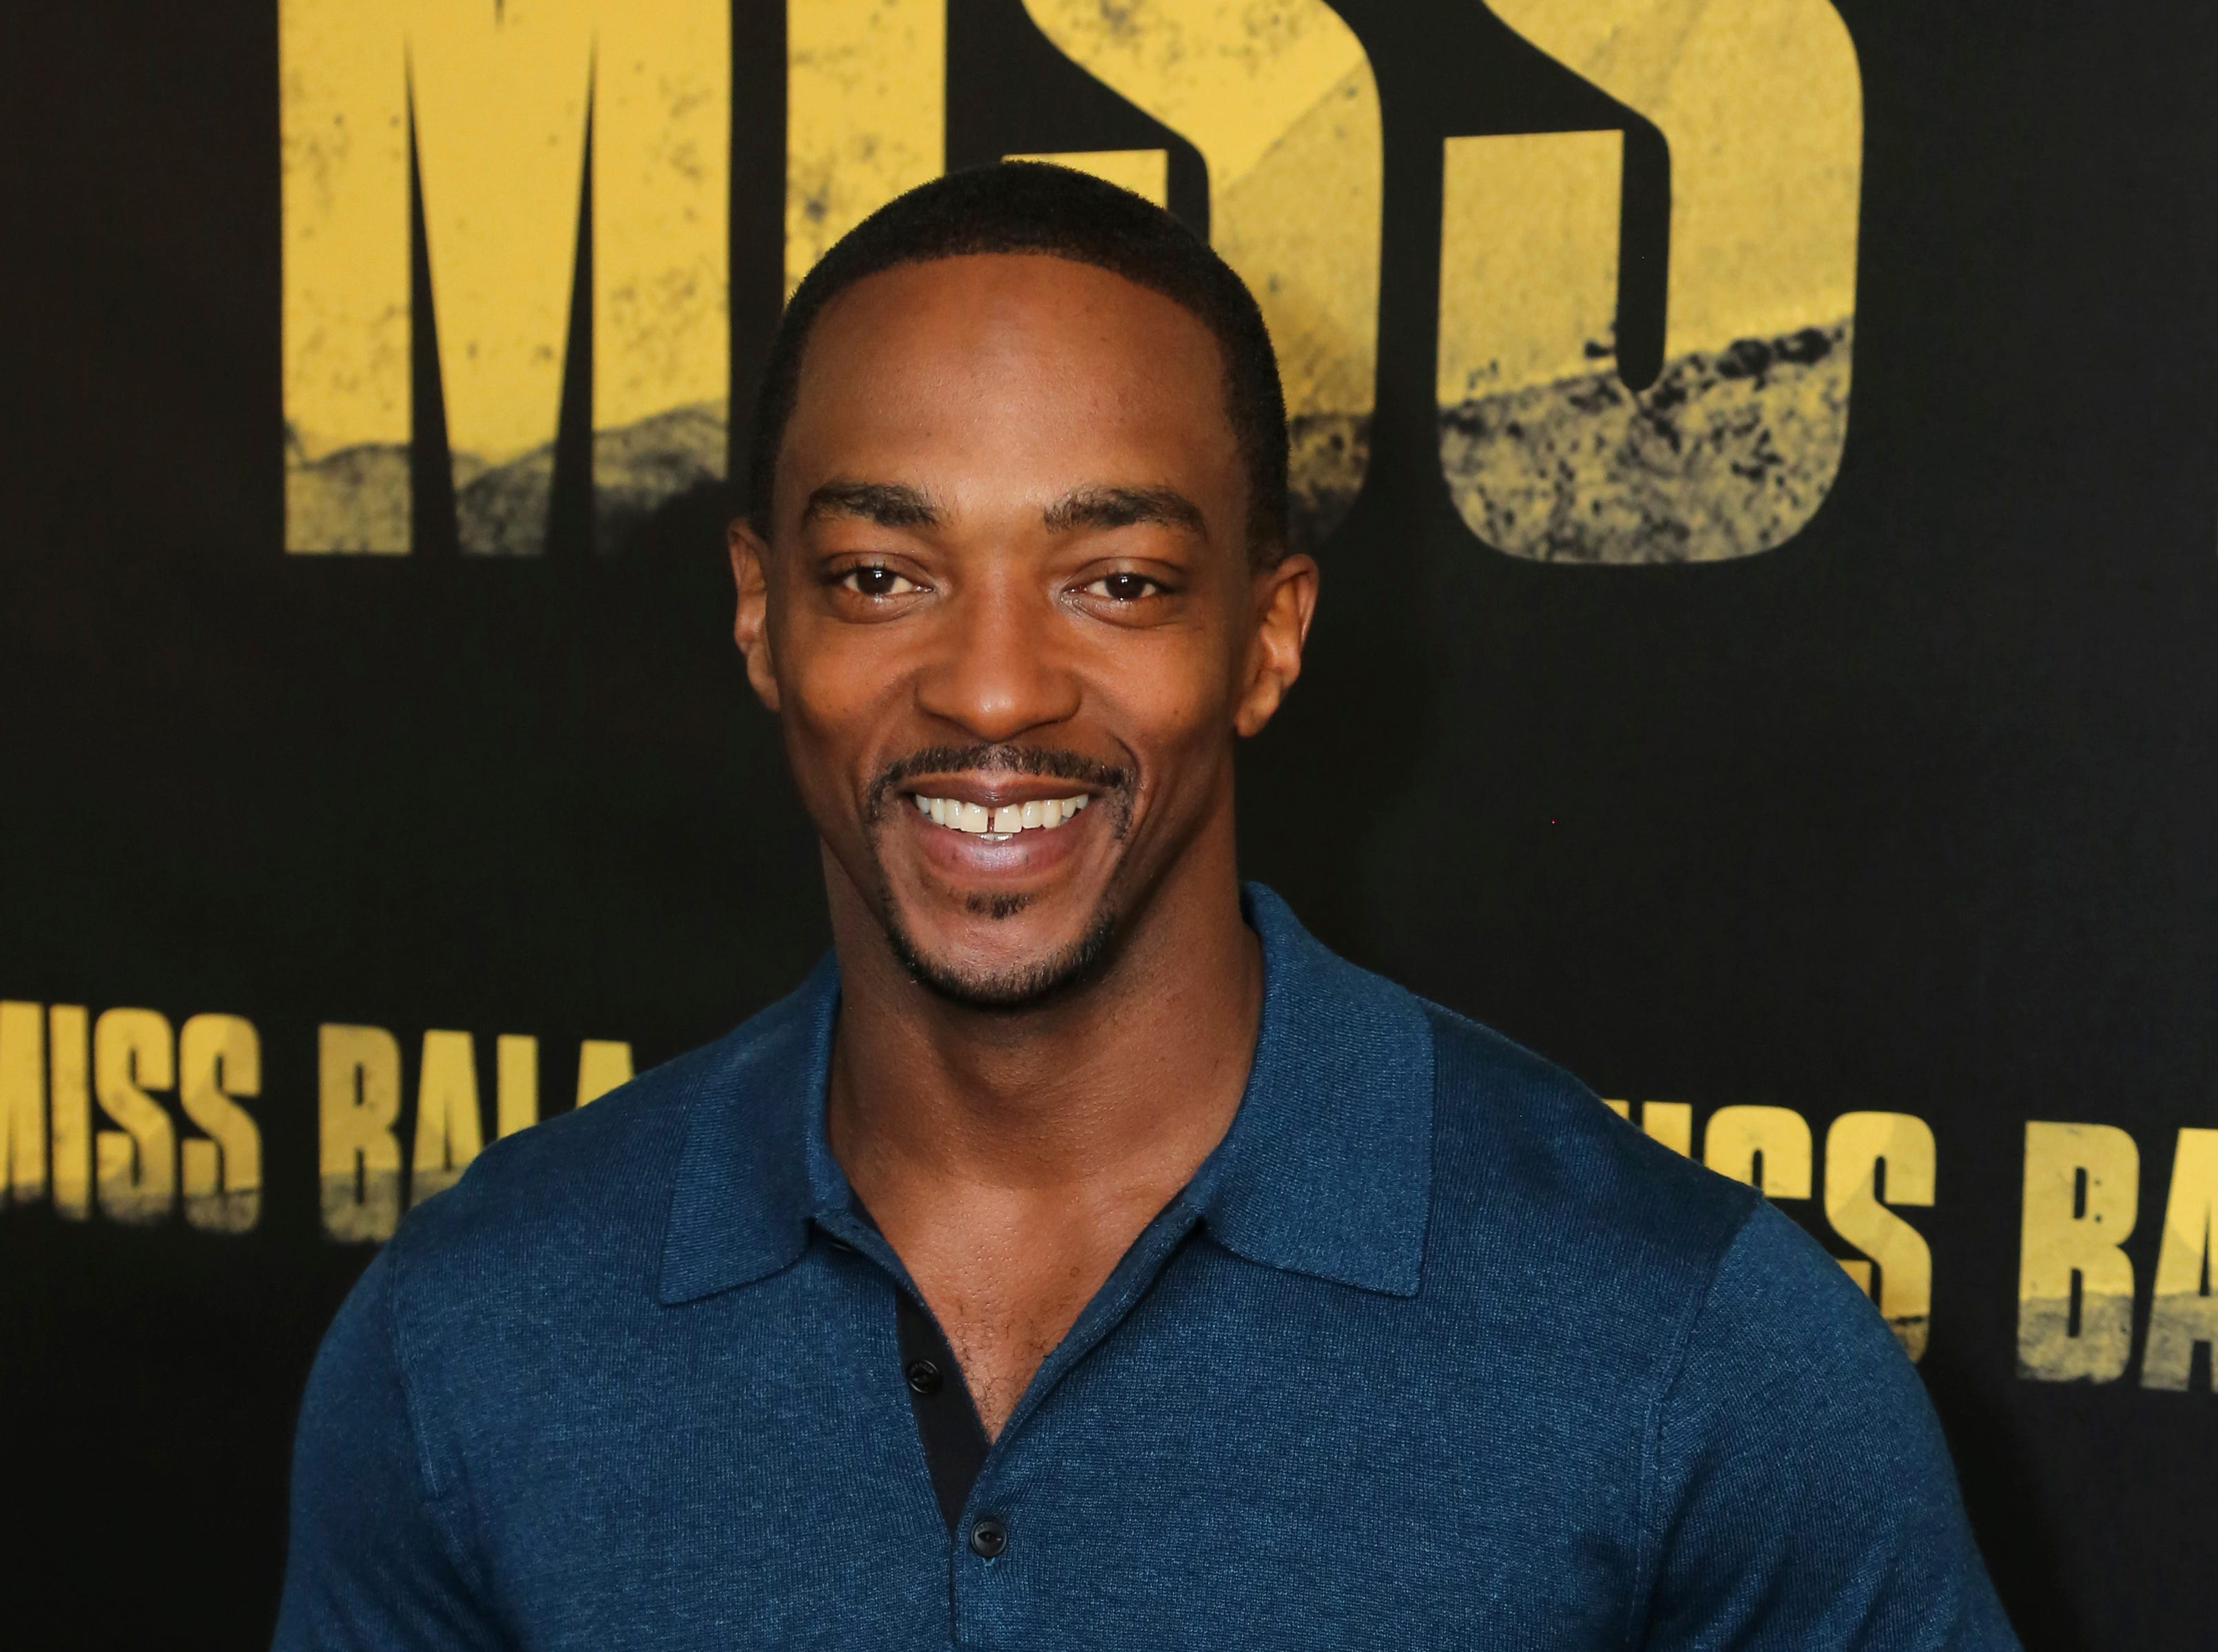 """Anthony Mackie poses for a photo at the """"Miss Bala"""" Photo Call at The London West Hollywood on Sunday, Jan. 13, 2019 in West Hollywood, Calif."""